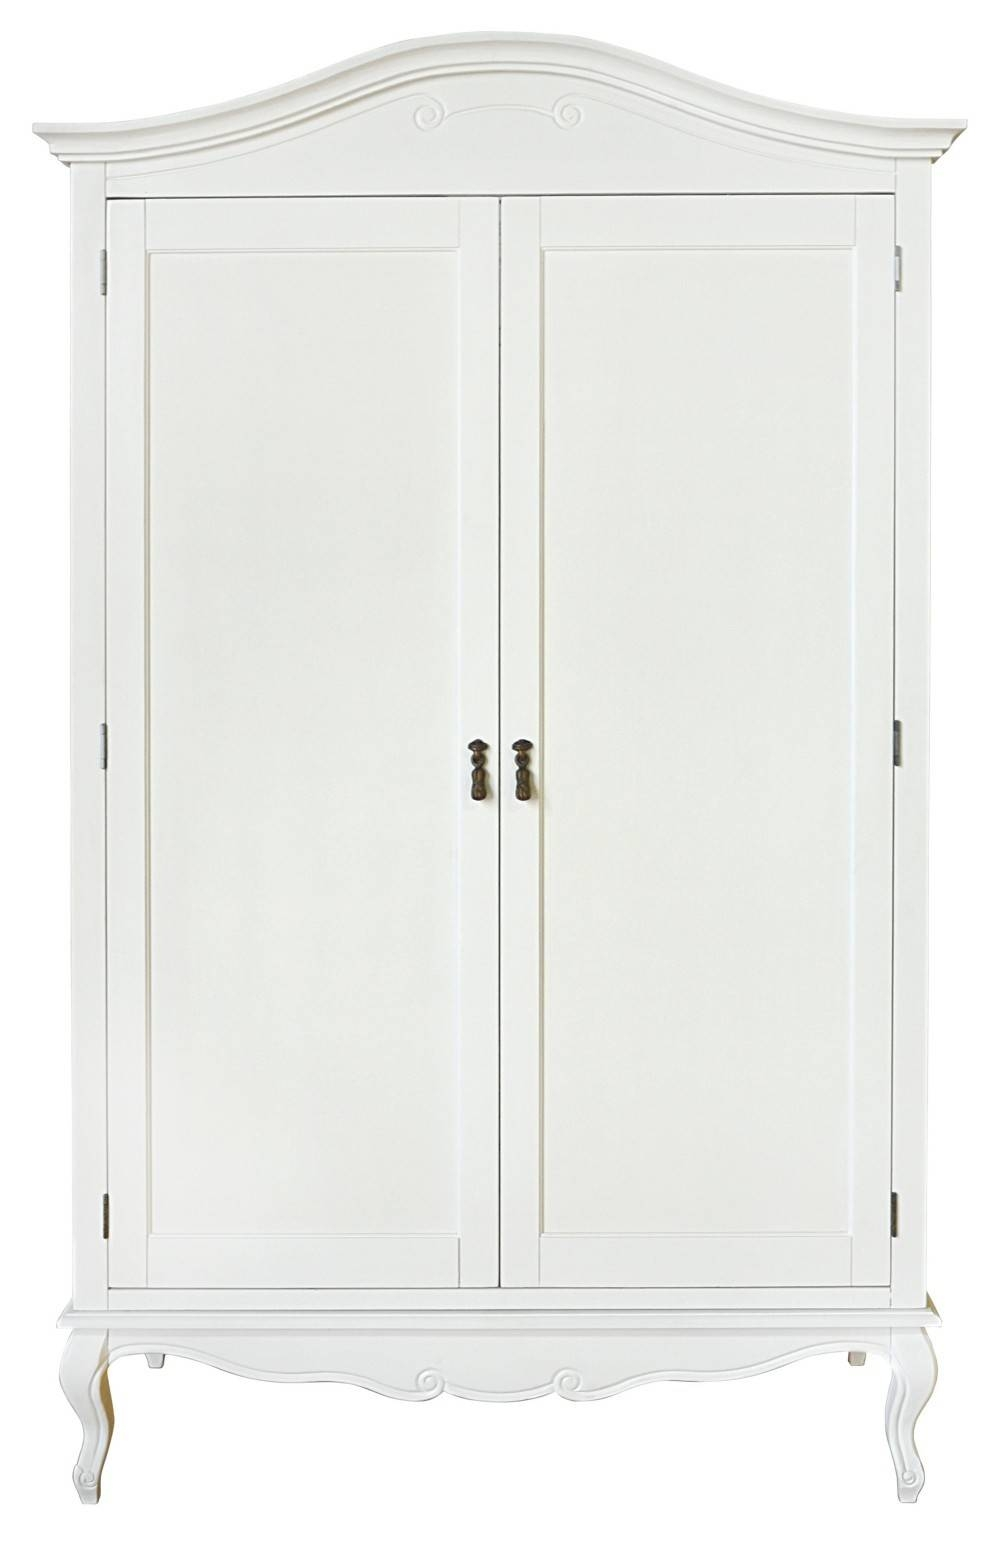 Wardrobes | Bedroom Furniture Direct with regard to Double Rail Wardrobe With Drawers (Image 26 of 30)